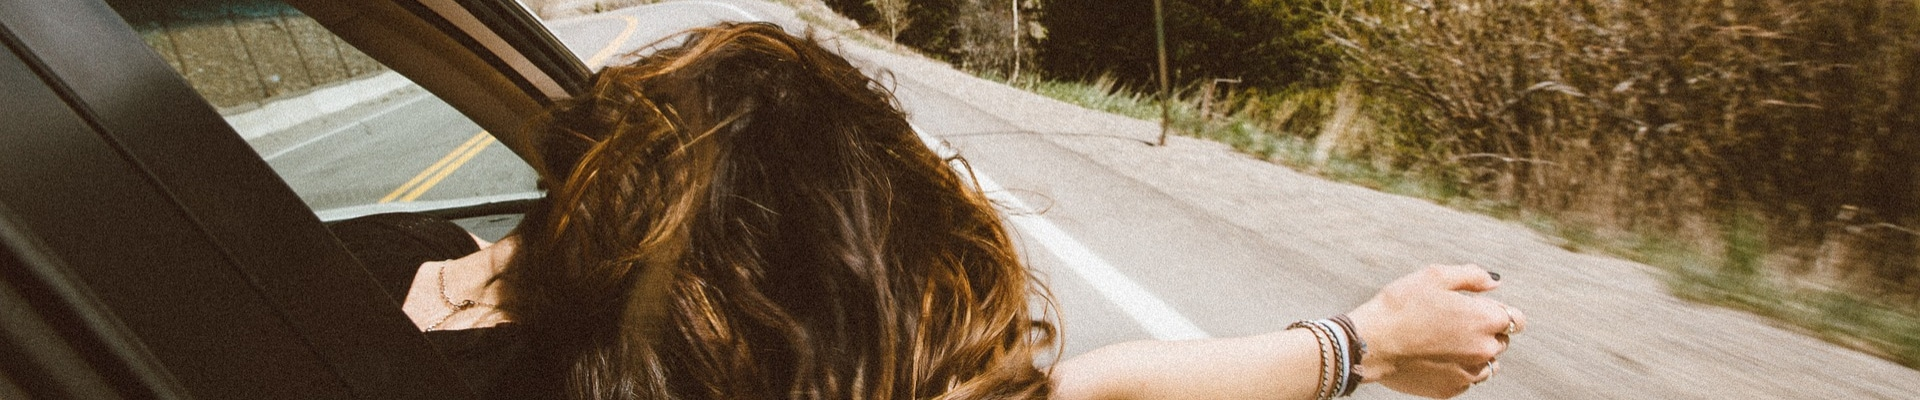 Young woman in the passenger seat hanging her arm and head out of the window enjoying the ride as the breezy air blows through her hair